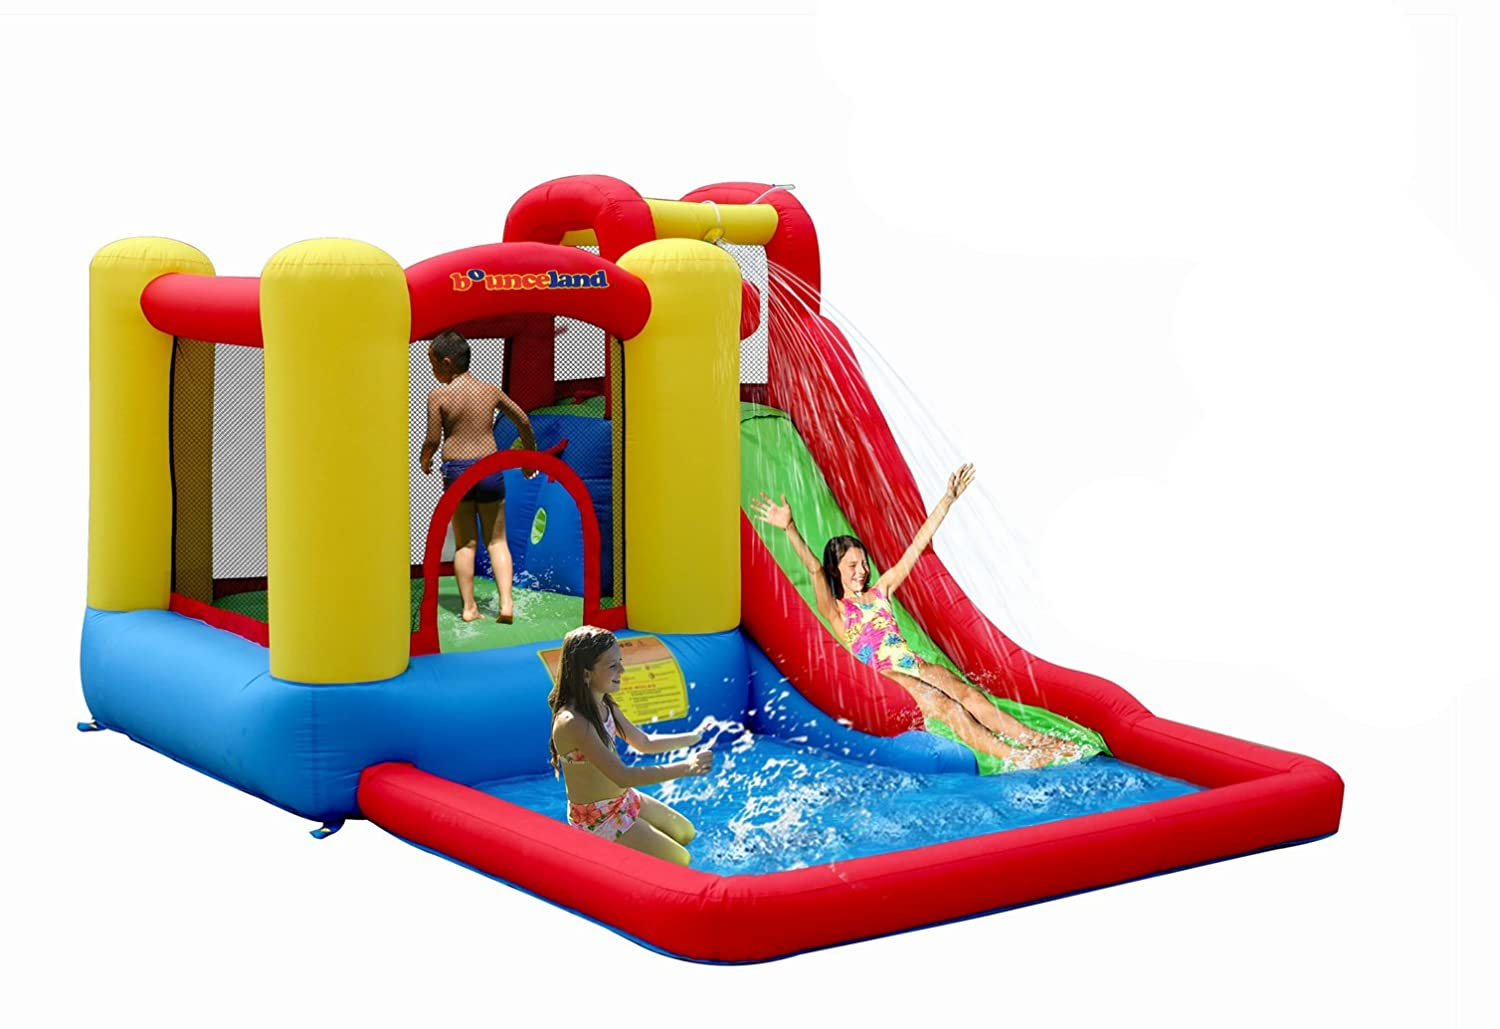 amazoncom bounceland jump and splash bounce house bouncer toys u0026 games - Blow Up Water Slides